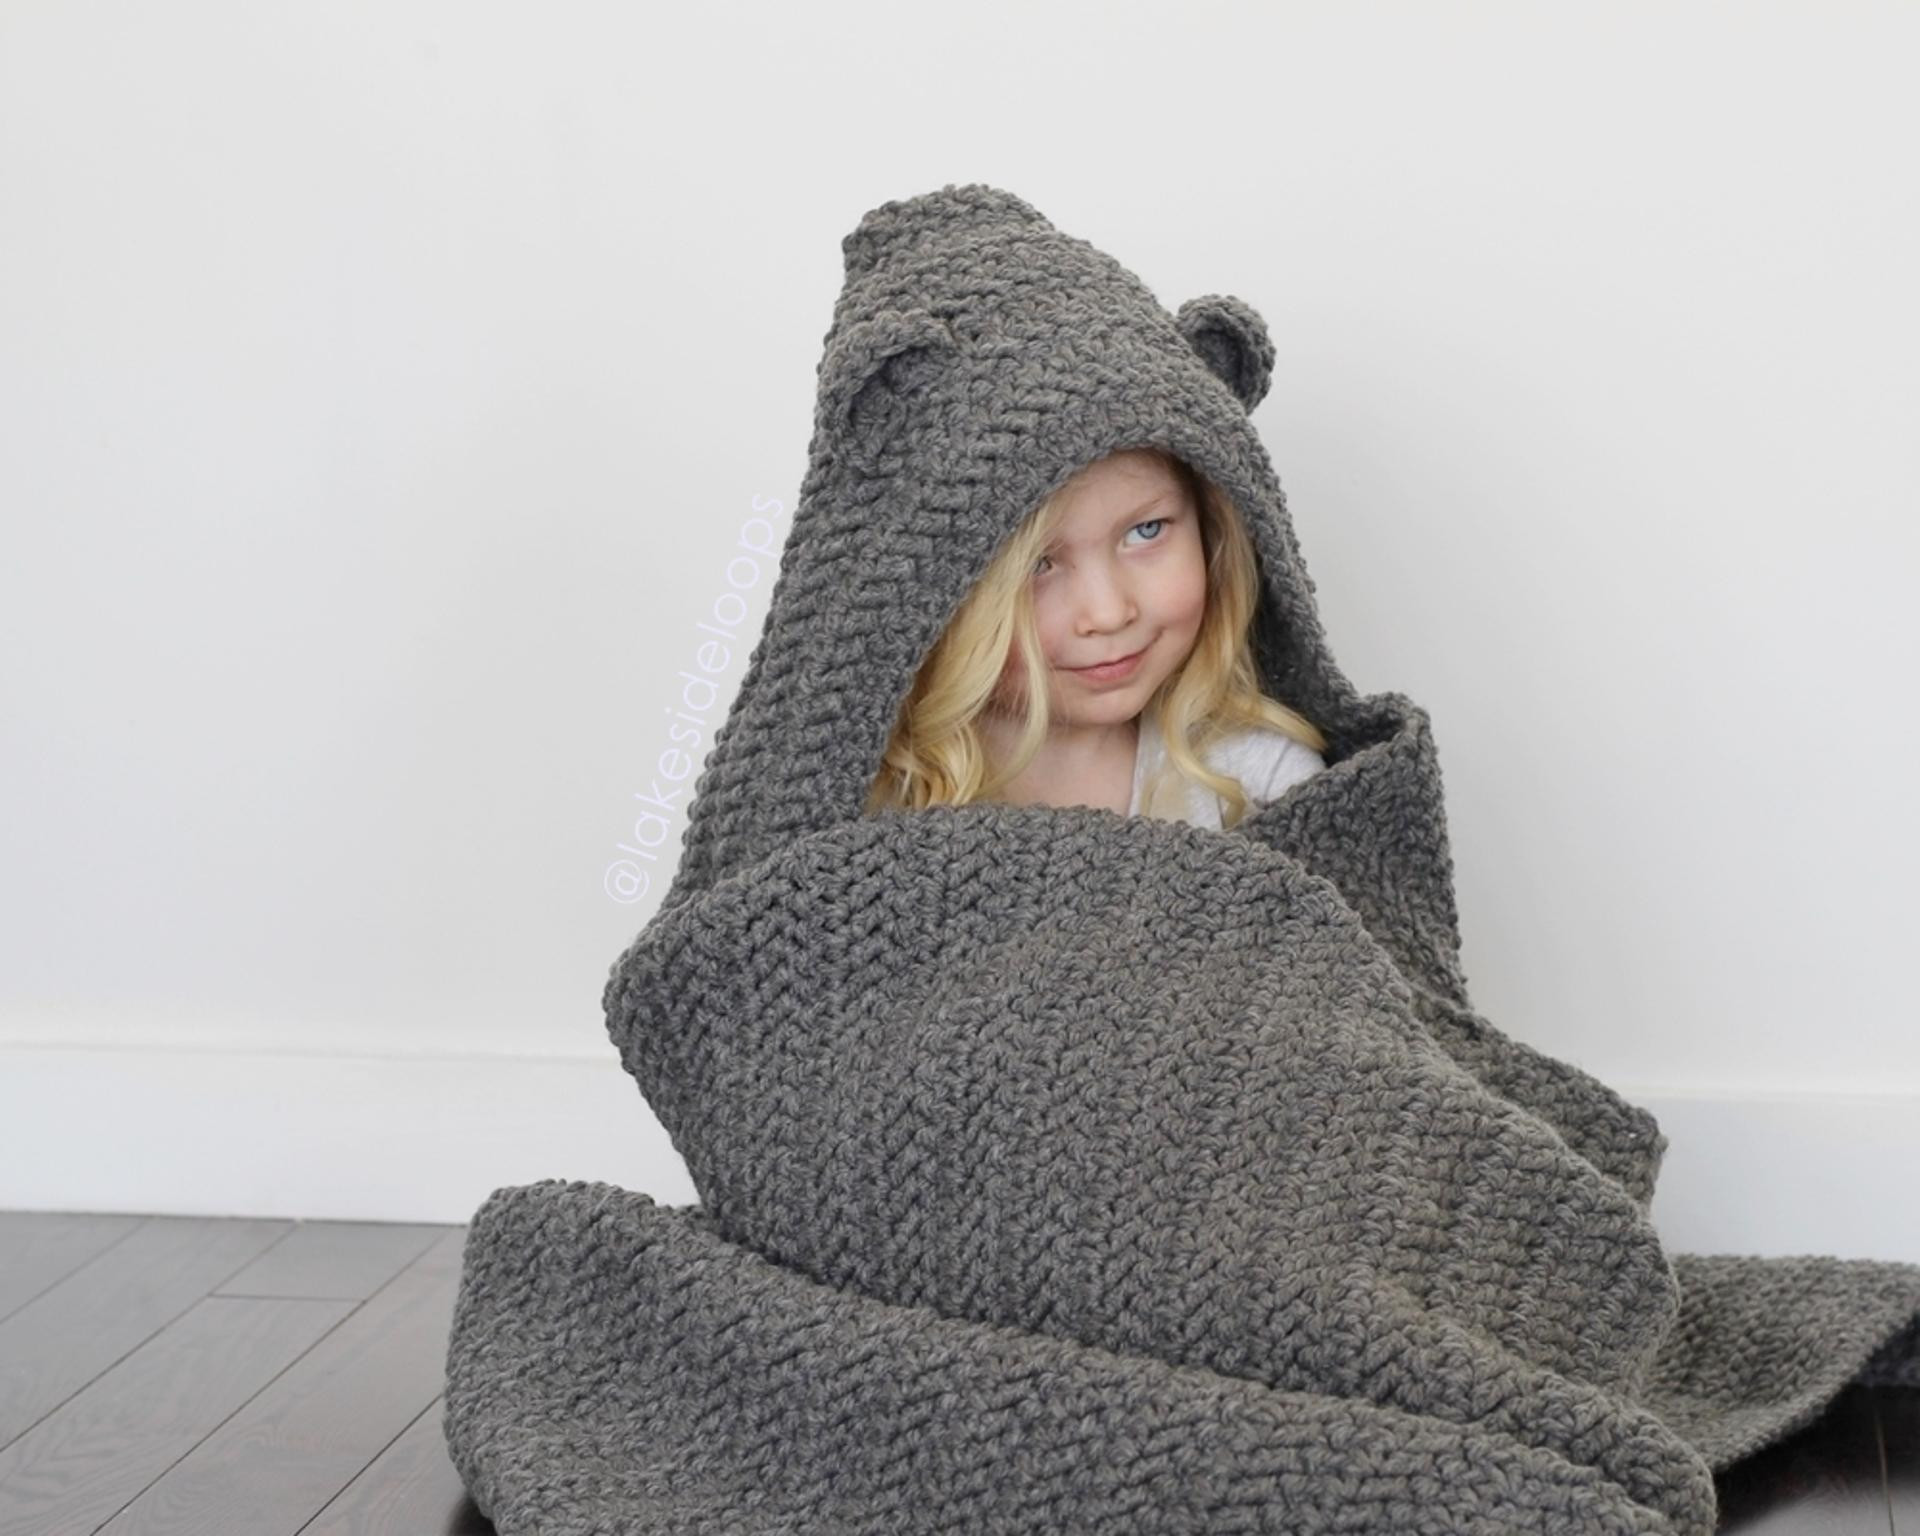 Hooded Blanket Pattern Luxury 10 Crochet Hooded Blanket Patterns for Kids and Adults Of Marvelous 46 Pics Hooded Blanket Pattern